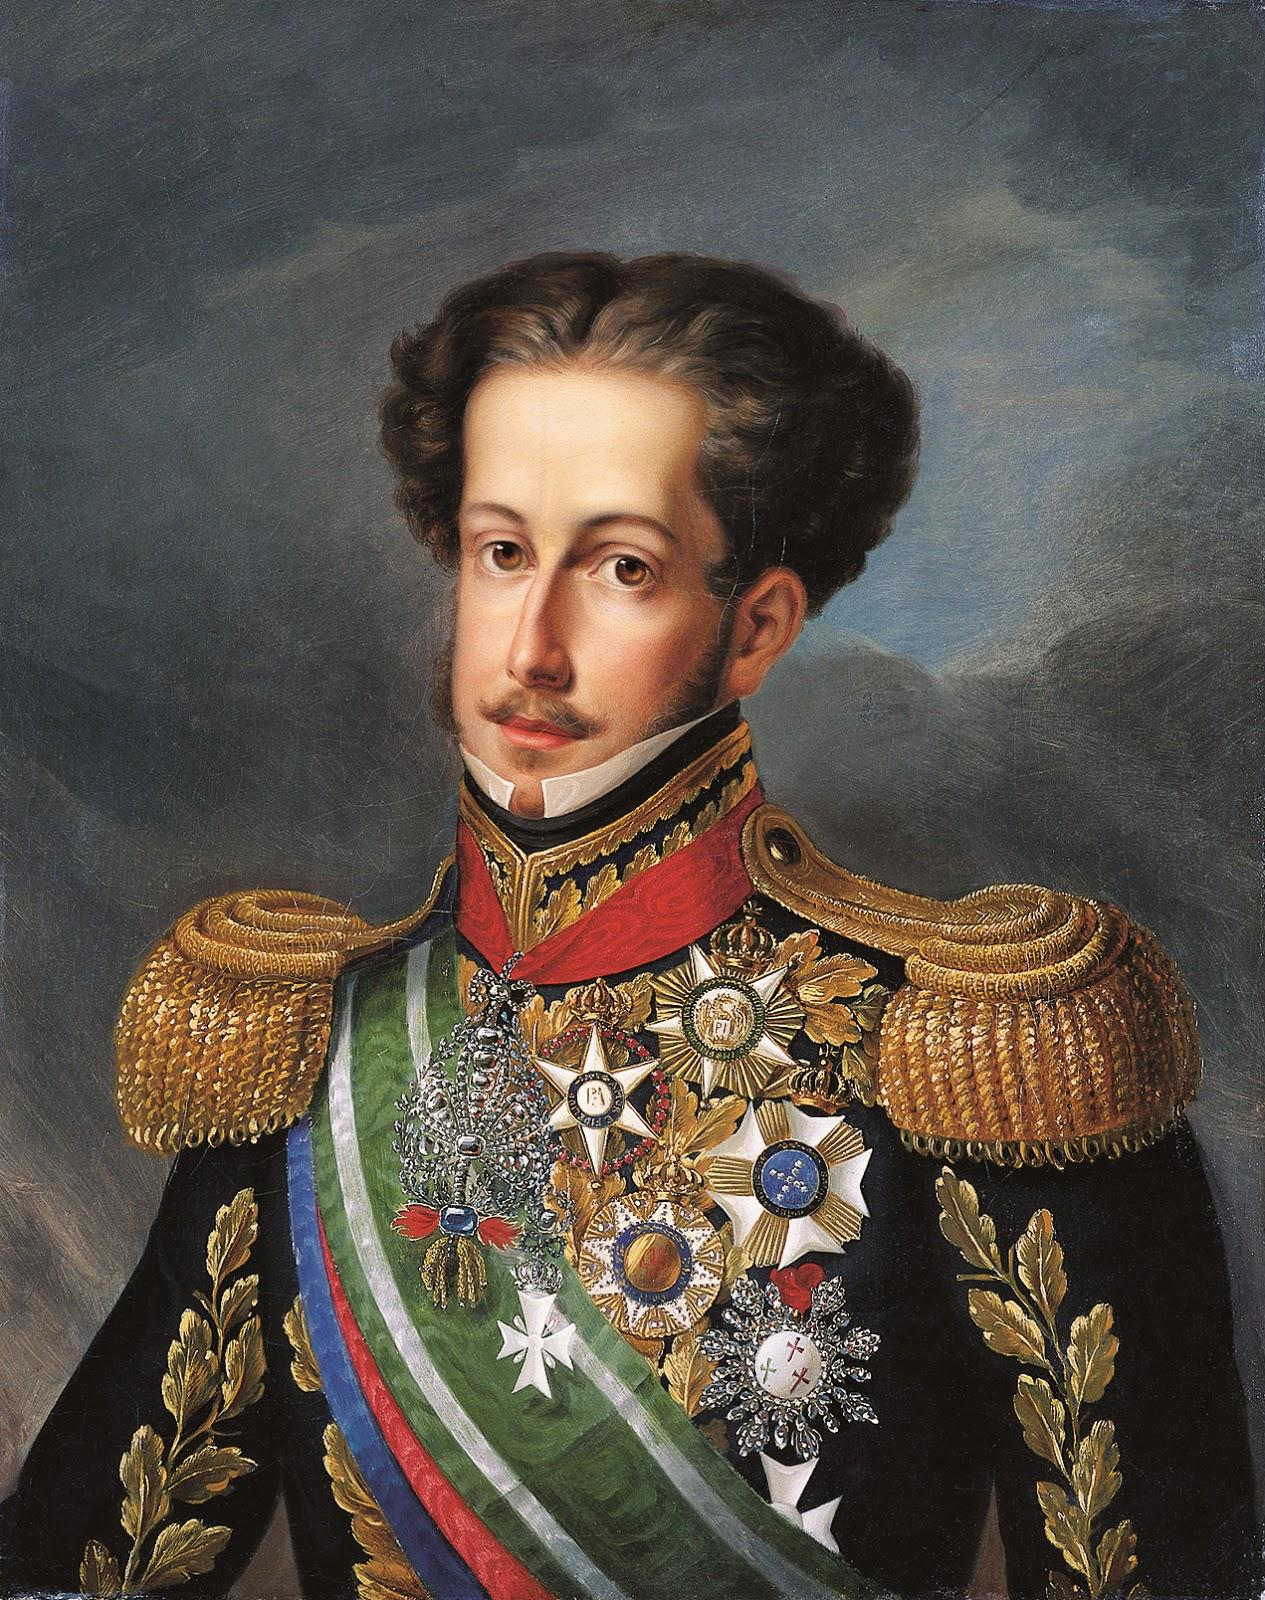 Pedro I & IV, Emperor of Brazil and King of Portugal and Algarves (c. 1830) by Simplício Rodrigues de Sá – Imperial Museum of Petrópolis